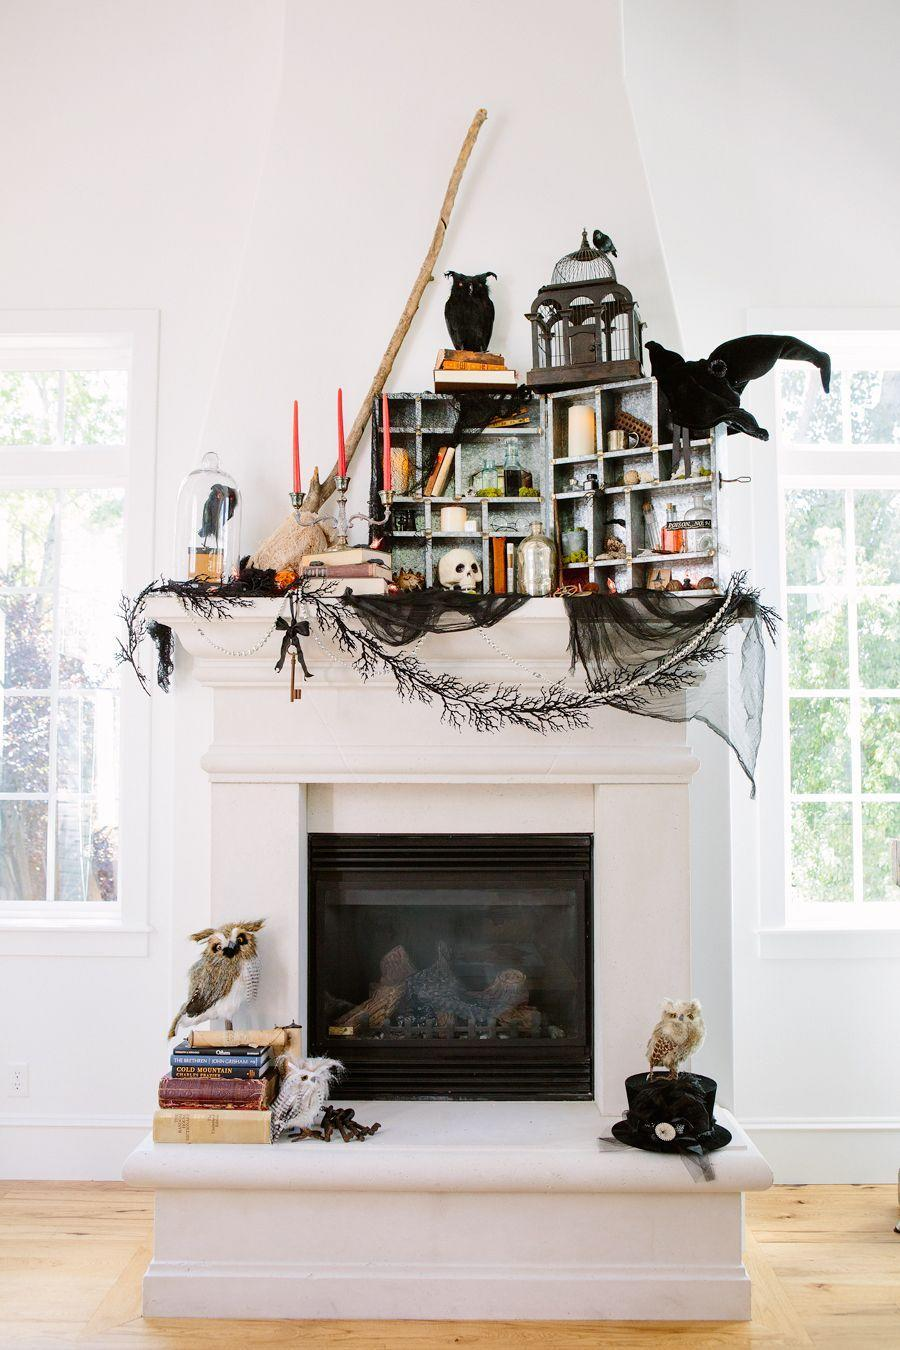 "<p>Draw the eye up on your fireplace mantel by decorating with themed objects, like broomsticks and witches' hats. Get the tutorial at <a href=""http://handmademood.com/a-step-by-step-guide-to-decorating-your-mantle/"" rel=""nofollow noopener"" target=""_blank"" data-ylk=""slk:Handmade Mood"" class=""link rapid-noclick-resp"">Handmade Mood</a>.</p><p><a class=""link rapid-noclick-resp"" href=""https://www.amazon.com/Touch-Nature-21722-1-Piece-Feather/dp/B008H55WIA/ref=sr_1_4?tag=syn-yahoo-20&ascsubtag=%5Bartid%7C10057.g.2554%5Bsrc%7Cyahoo-us"" rel=""nofollow noopener"" target=""_blank"" data-ylk=""slk:BUY NOW"">BUY NOW</a> <strong><em>Faux Flying Crow, $12</em></strong></p>"